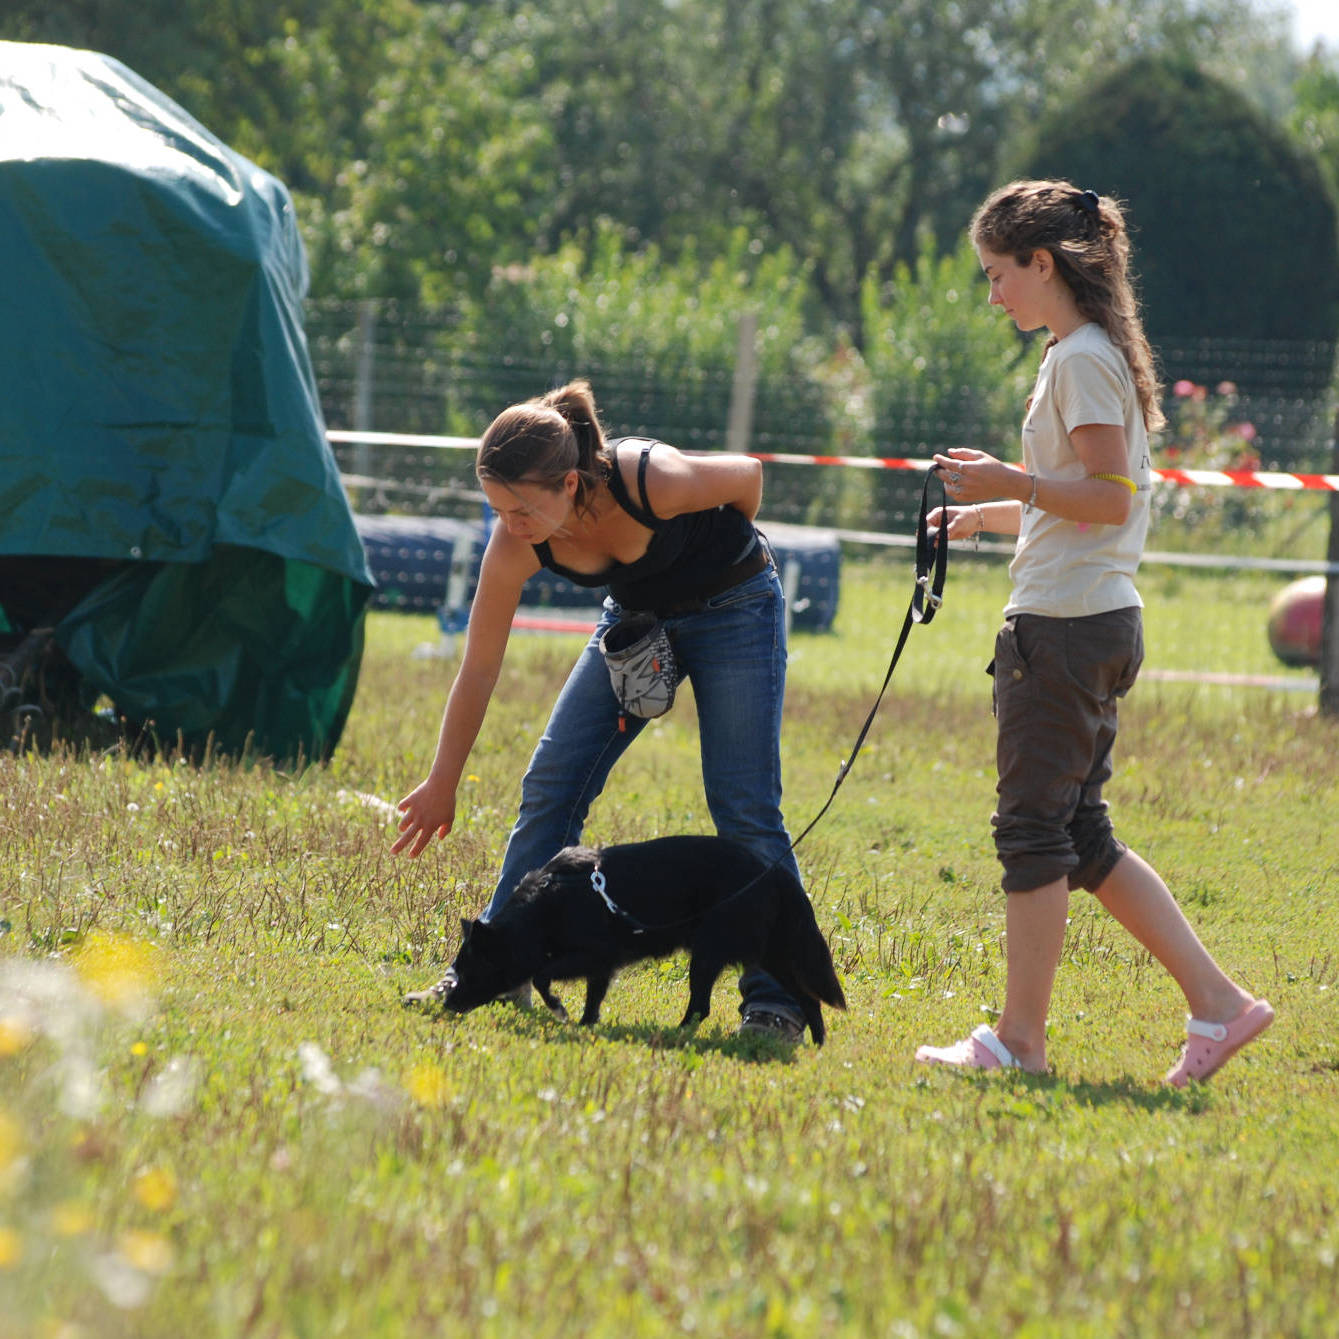 Flair - C5 : Initiation aux sports canins - Formation d'éducateur canin - AoA Formation